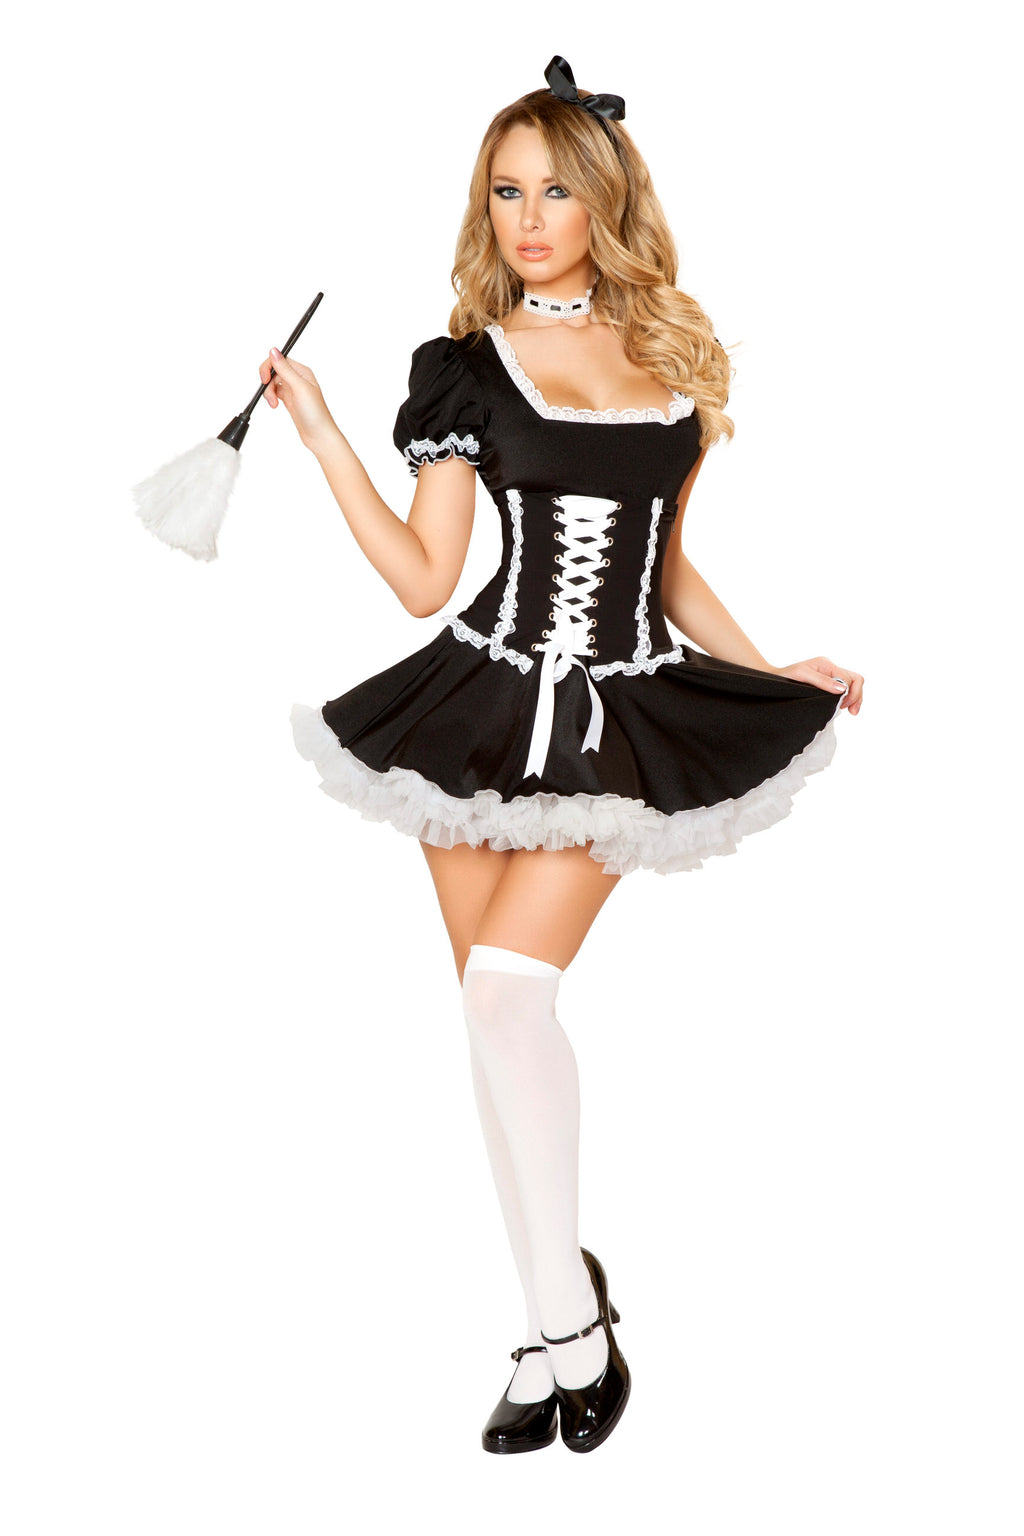 4-Piece-Naughty-French-Maid-Cincher-Dress-w/-Accessories-Party-Costume